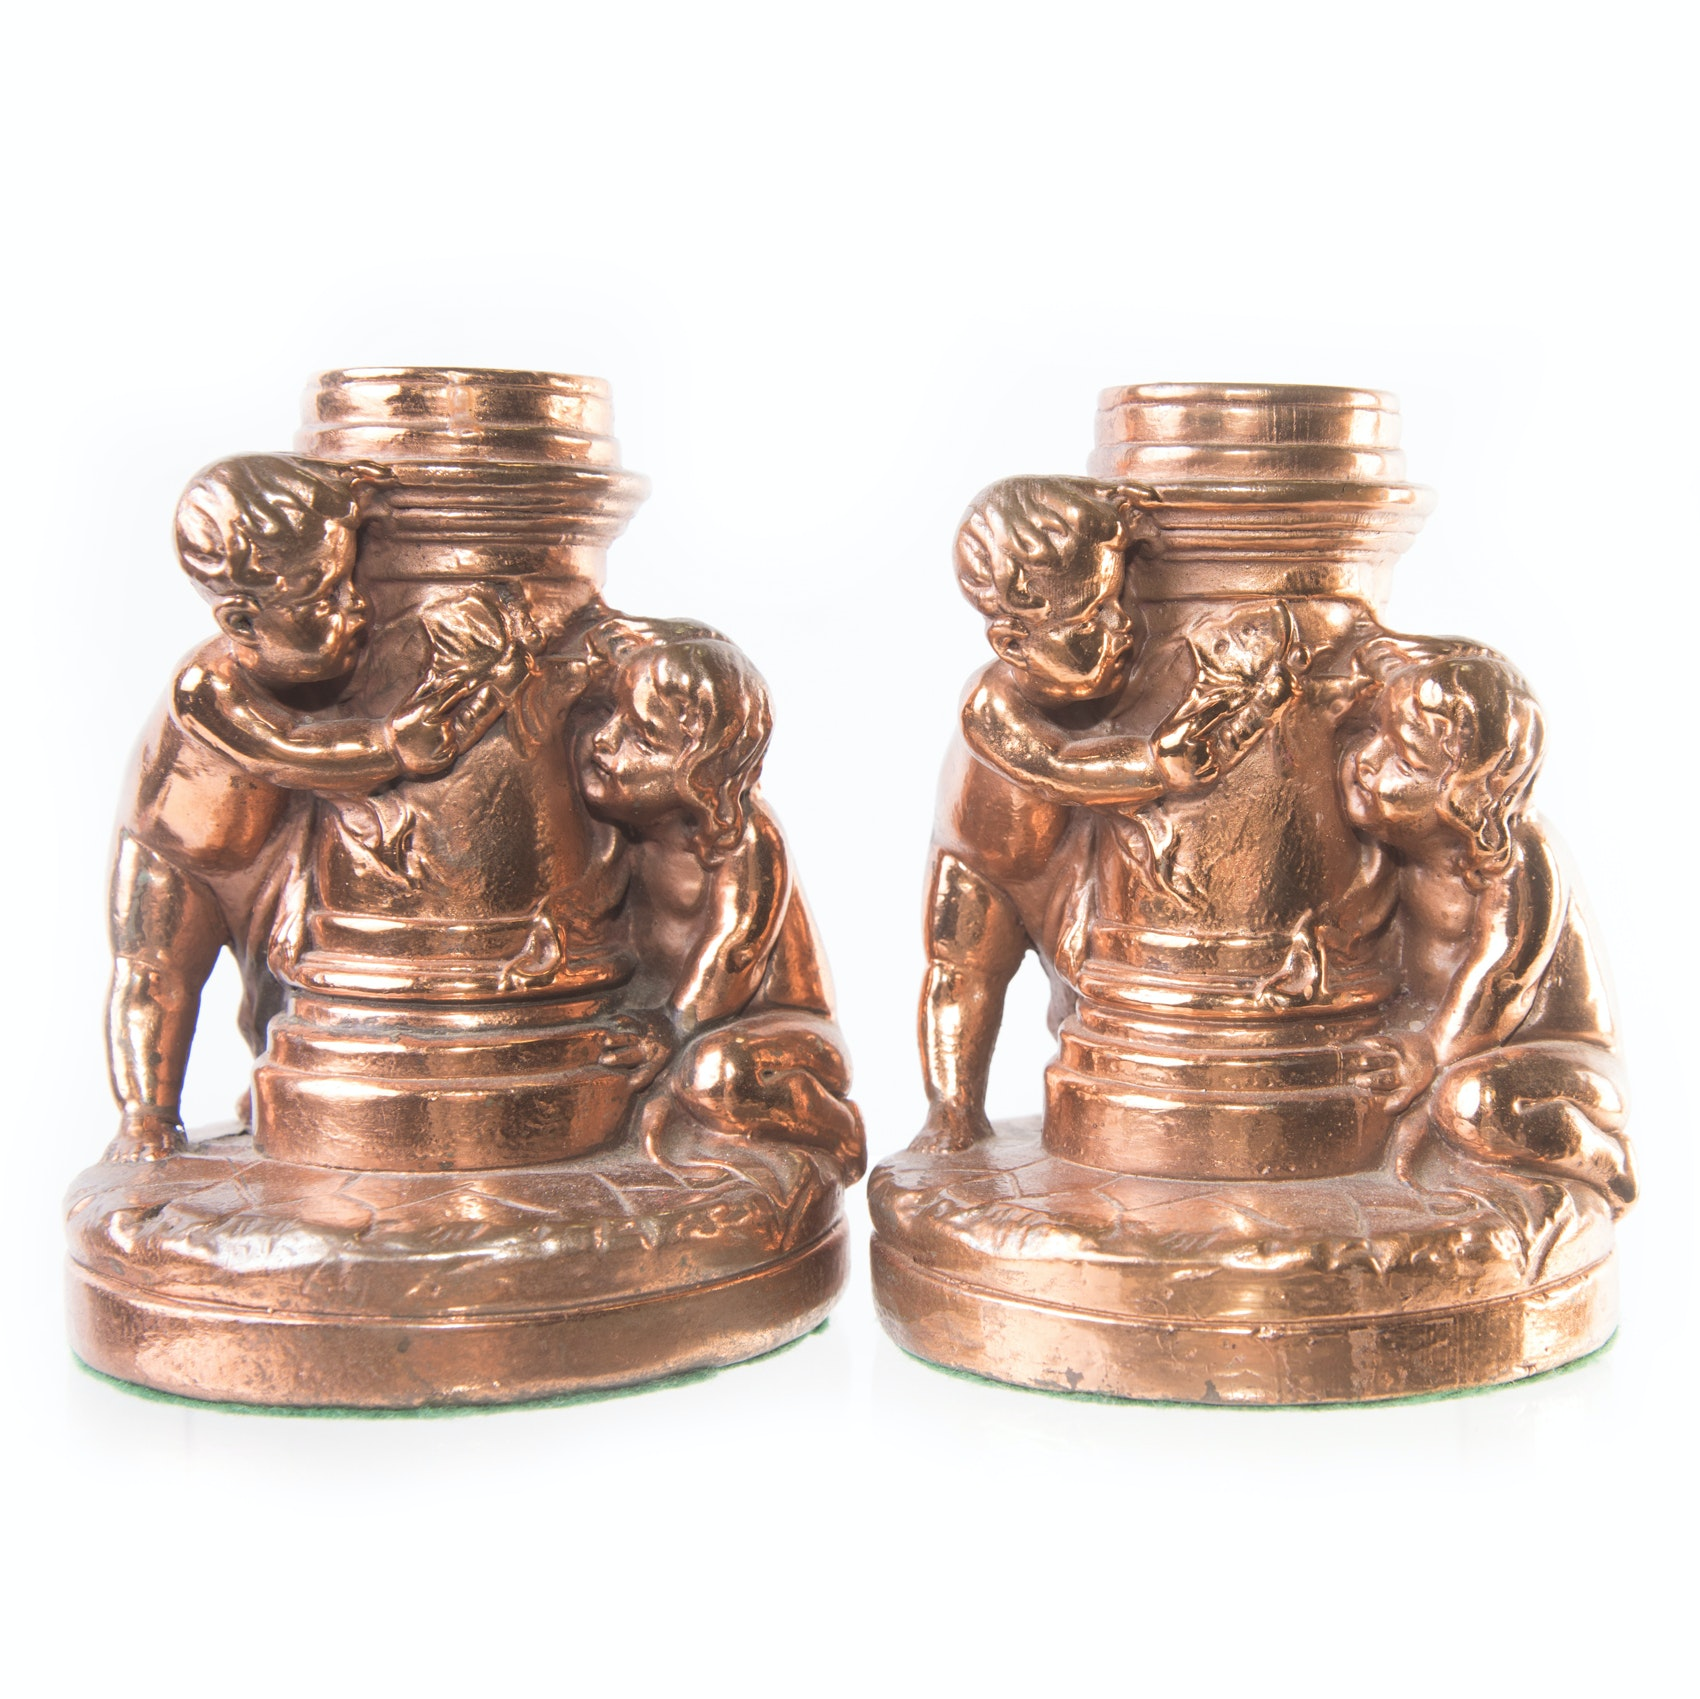 Vintage Copper Finish Brass Candle Holders